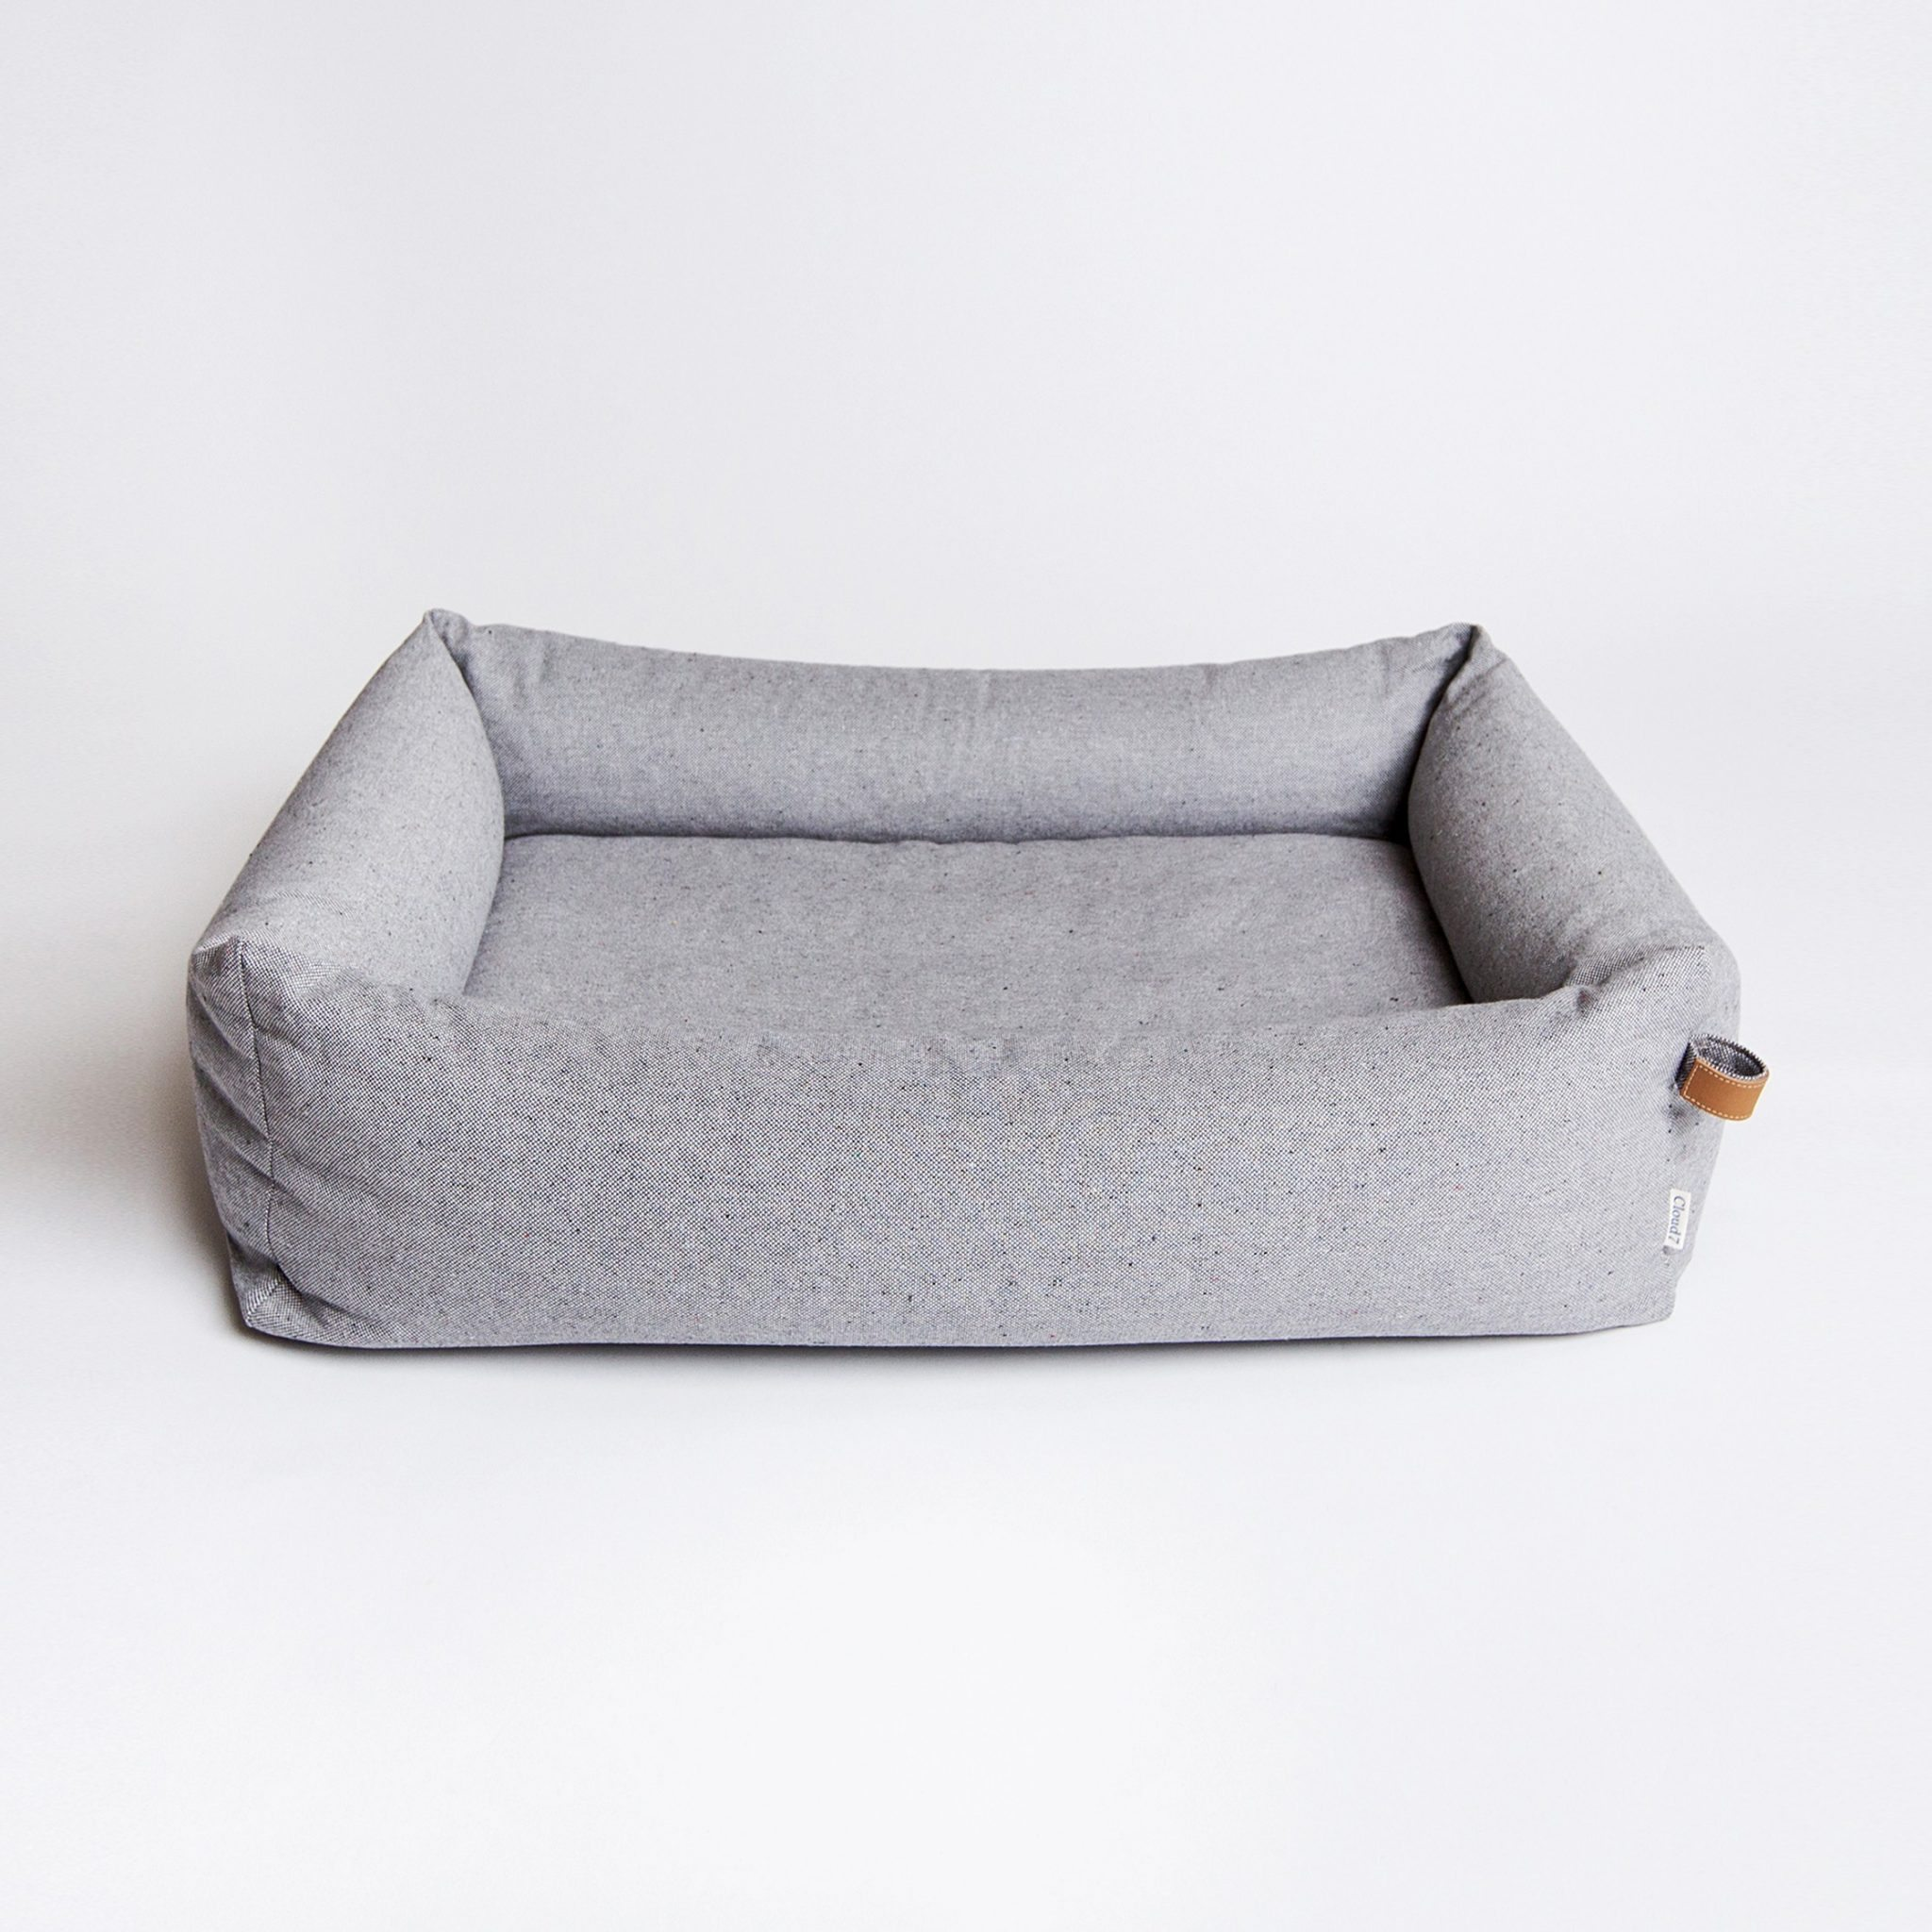 limited bed story stockwell cushion our fireside accessories luxury dog wool bone pages home beds